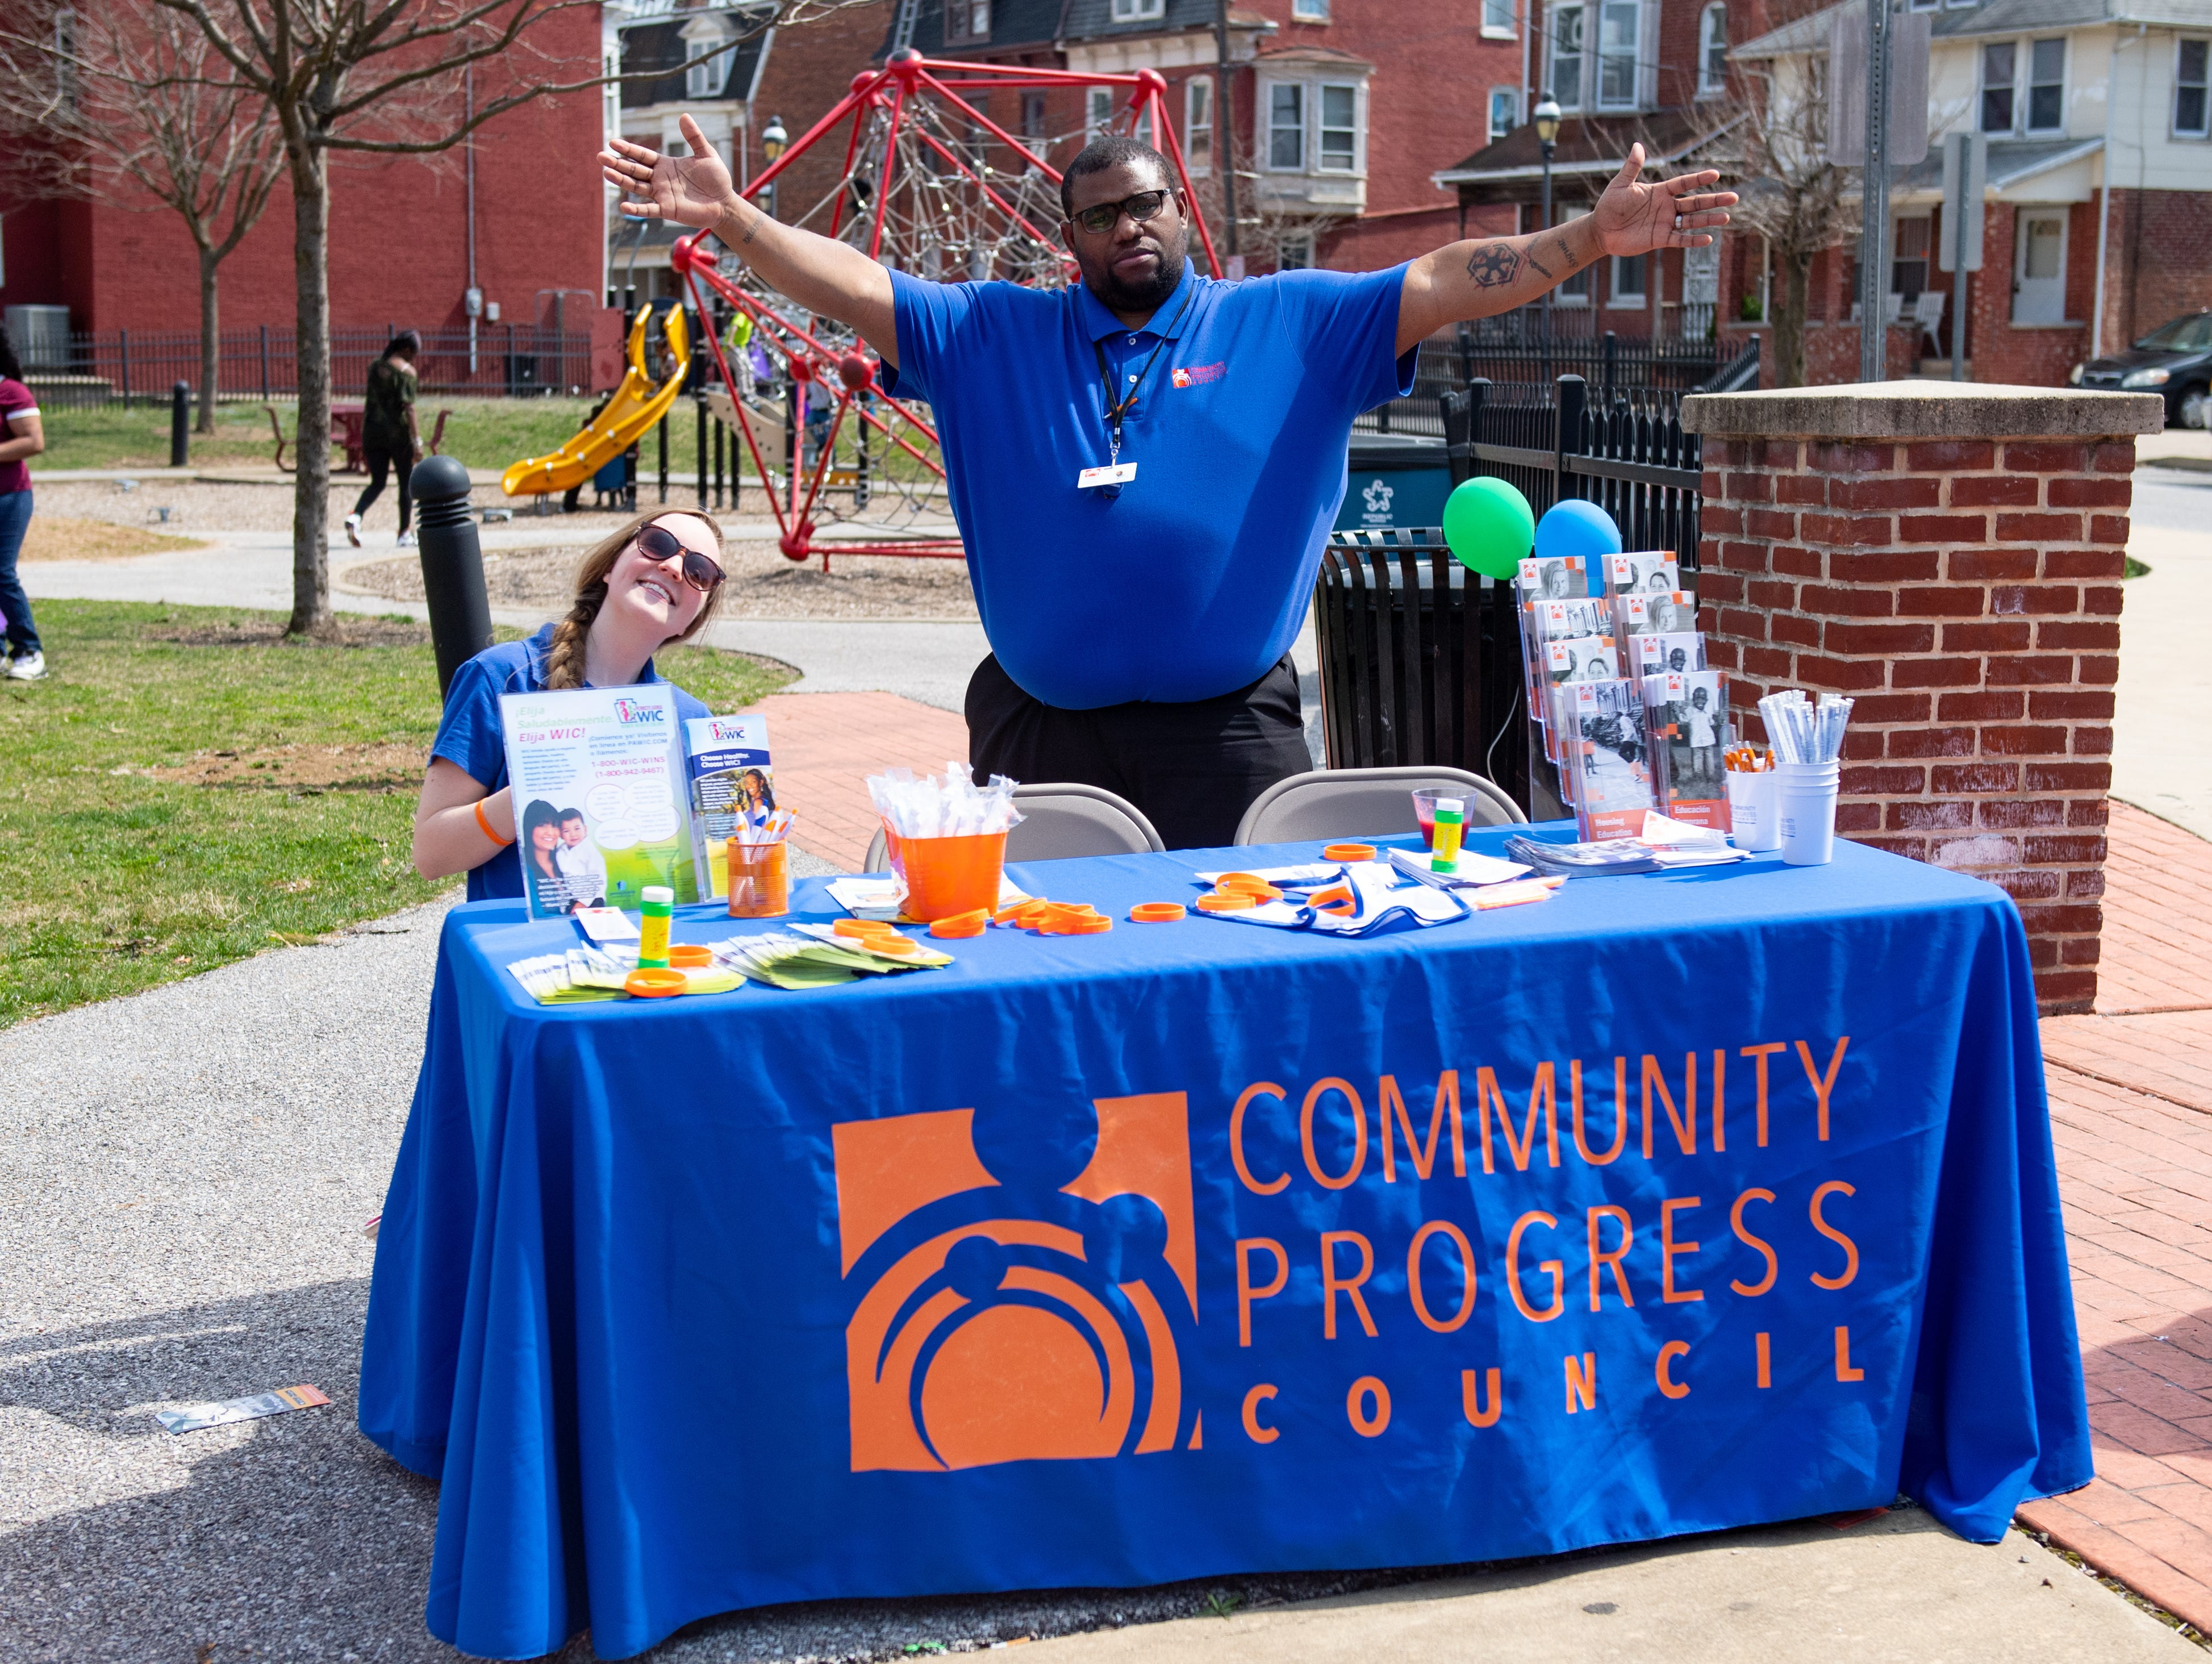 The Community Progress Council booth welcomes all to stop by during the Adelante Festival at Renaissance Park, March 30, 2019.